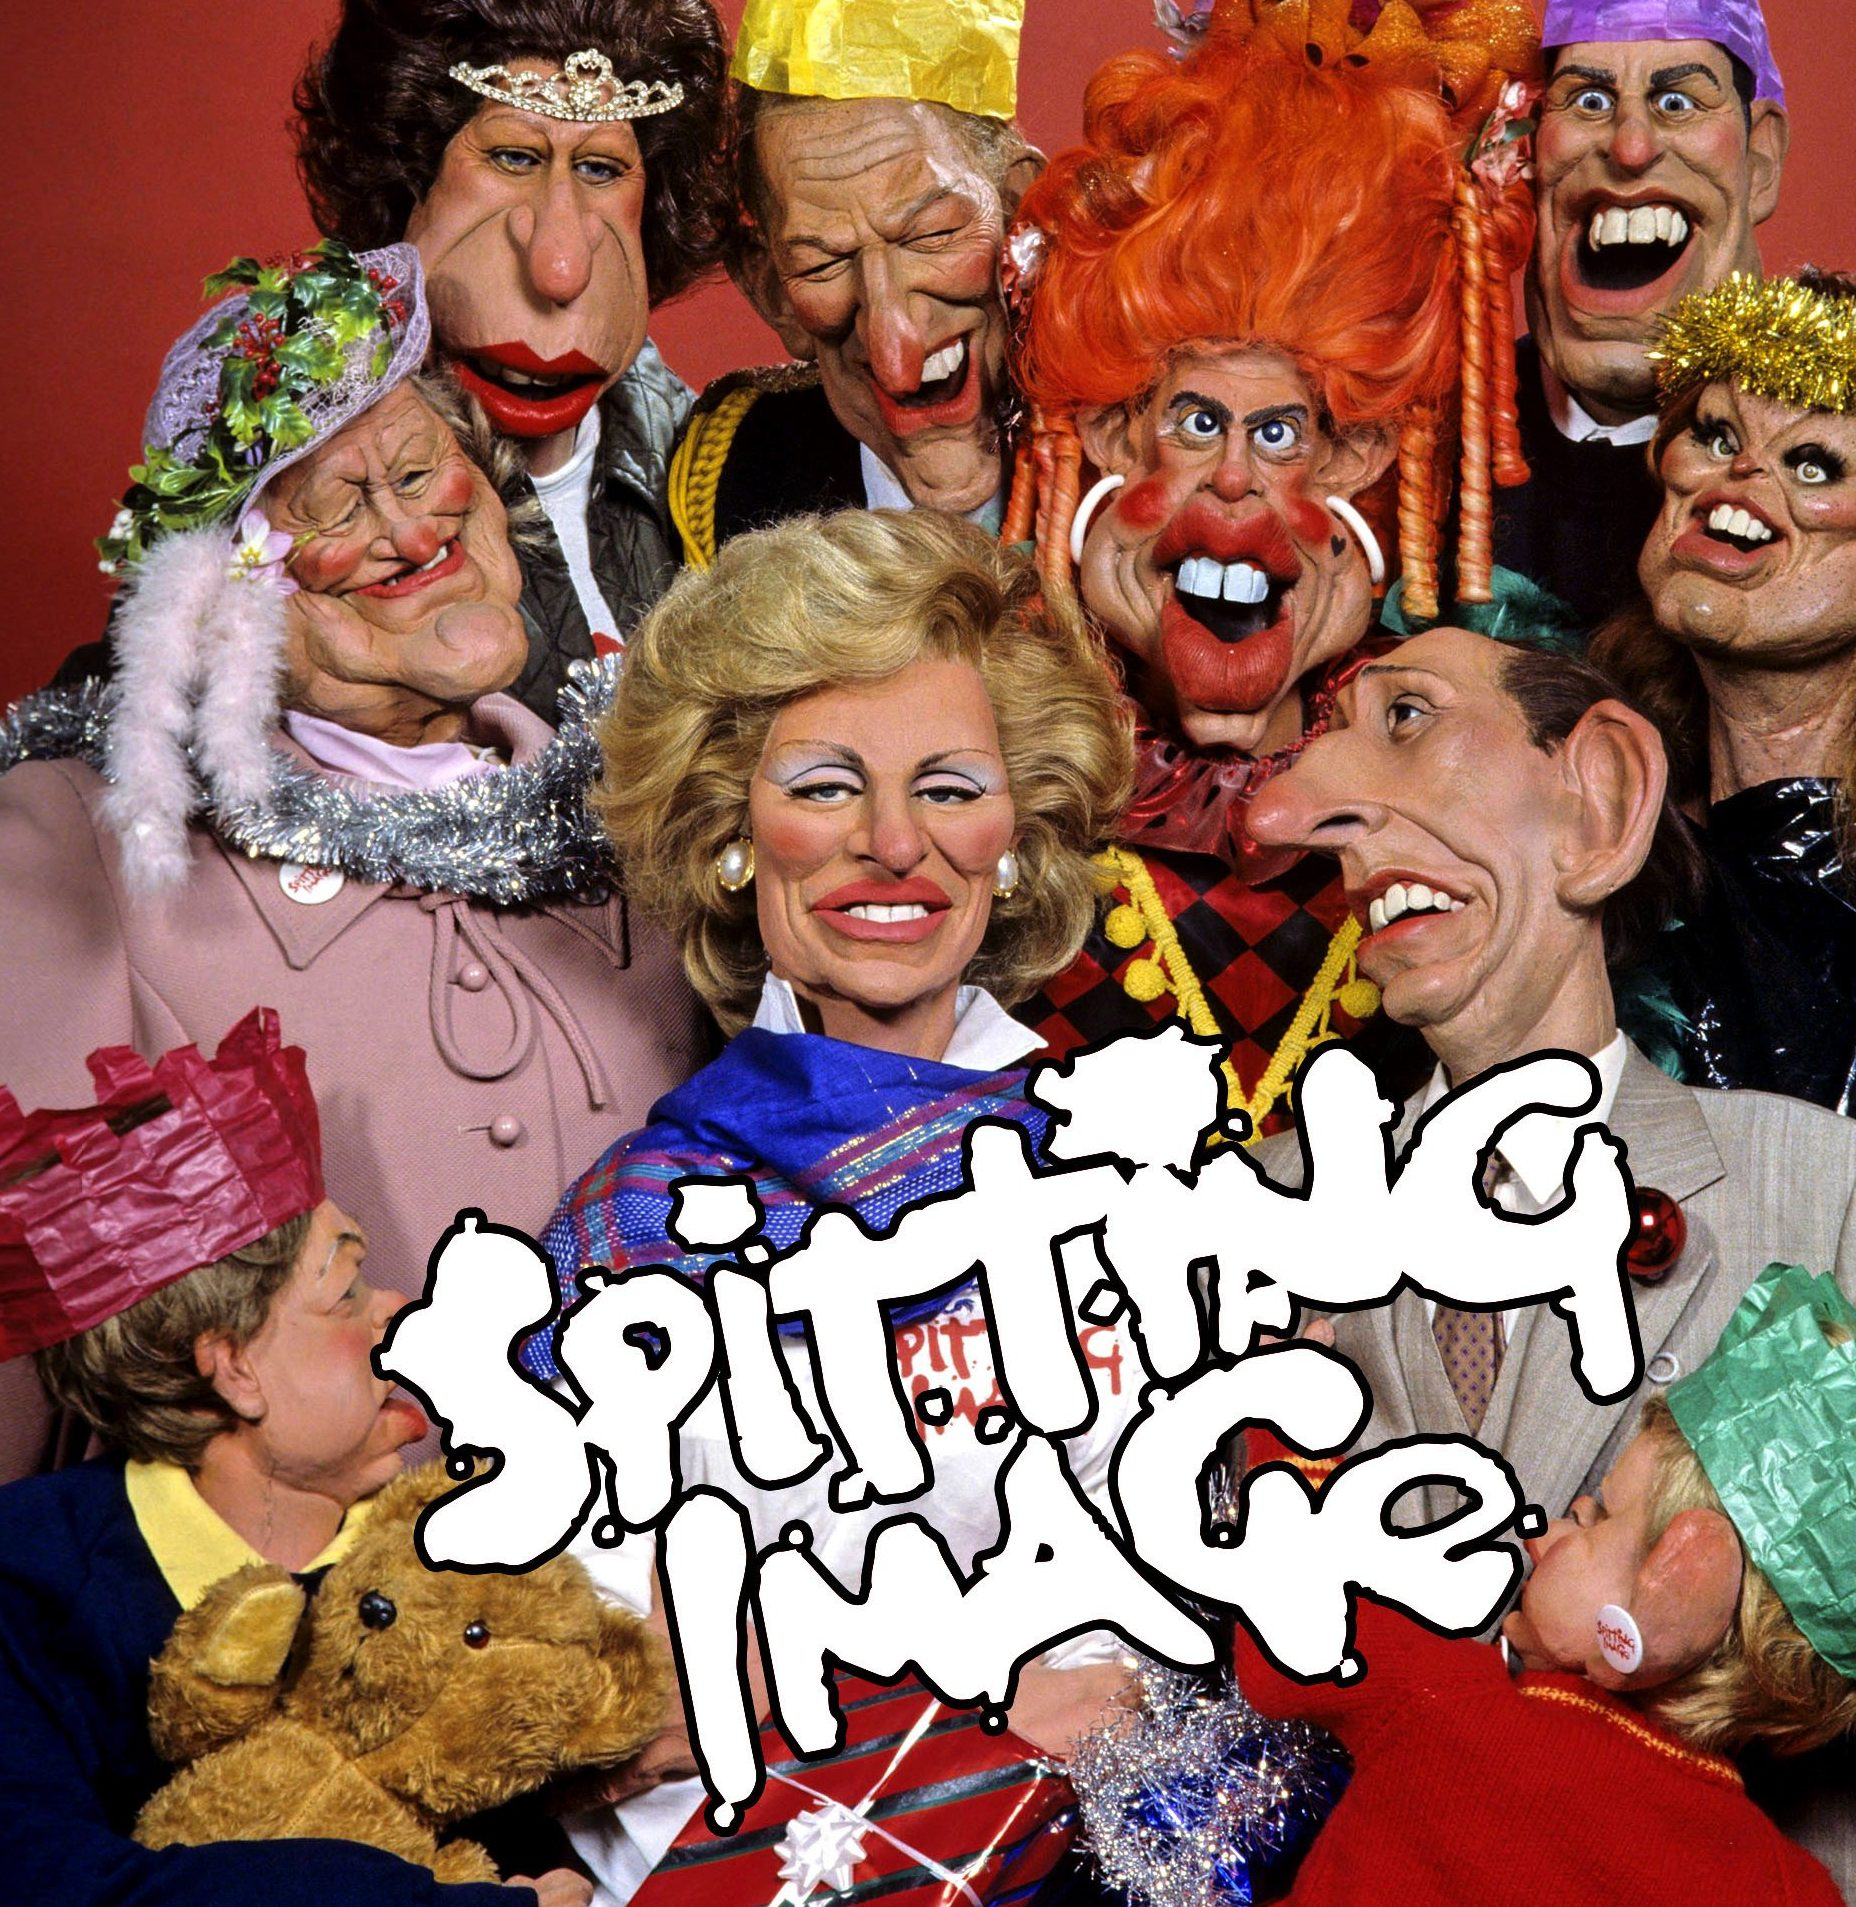 91OOhNzSrL. RI e1583318988675 80s Puppet Comedy Classic Spitting Image Is Coming Back To TV